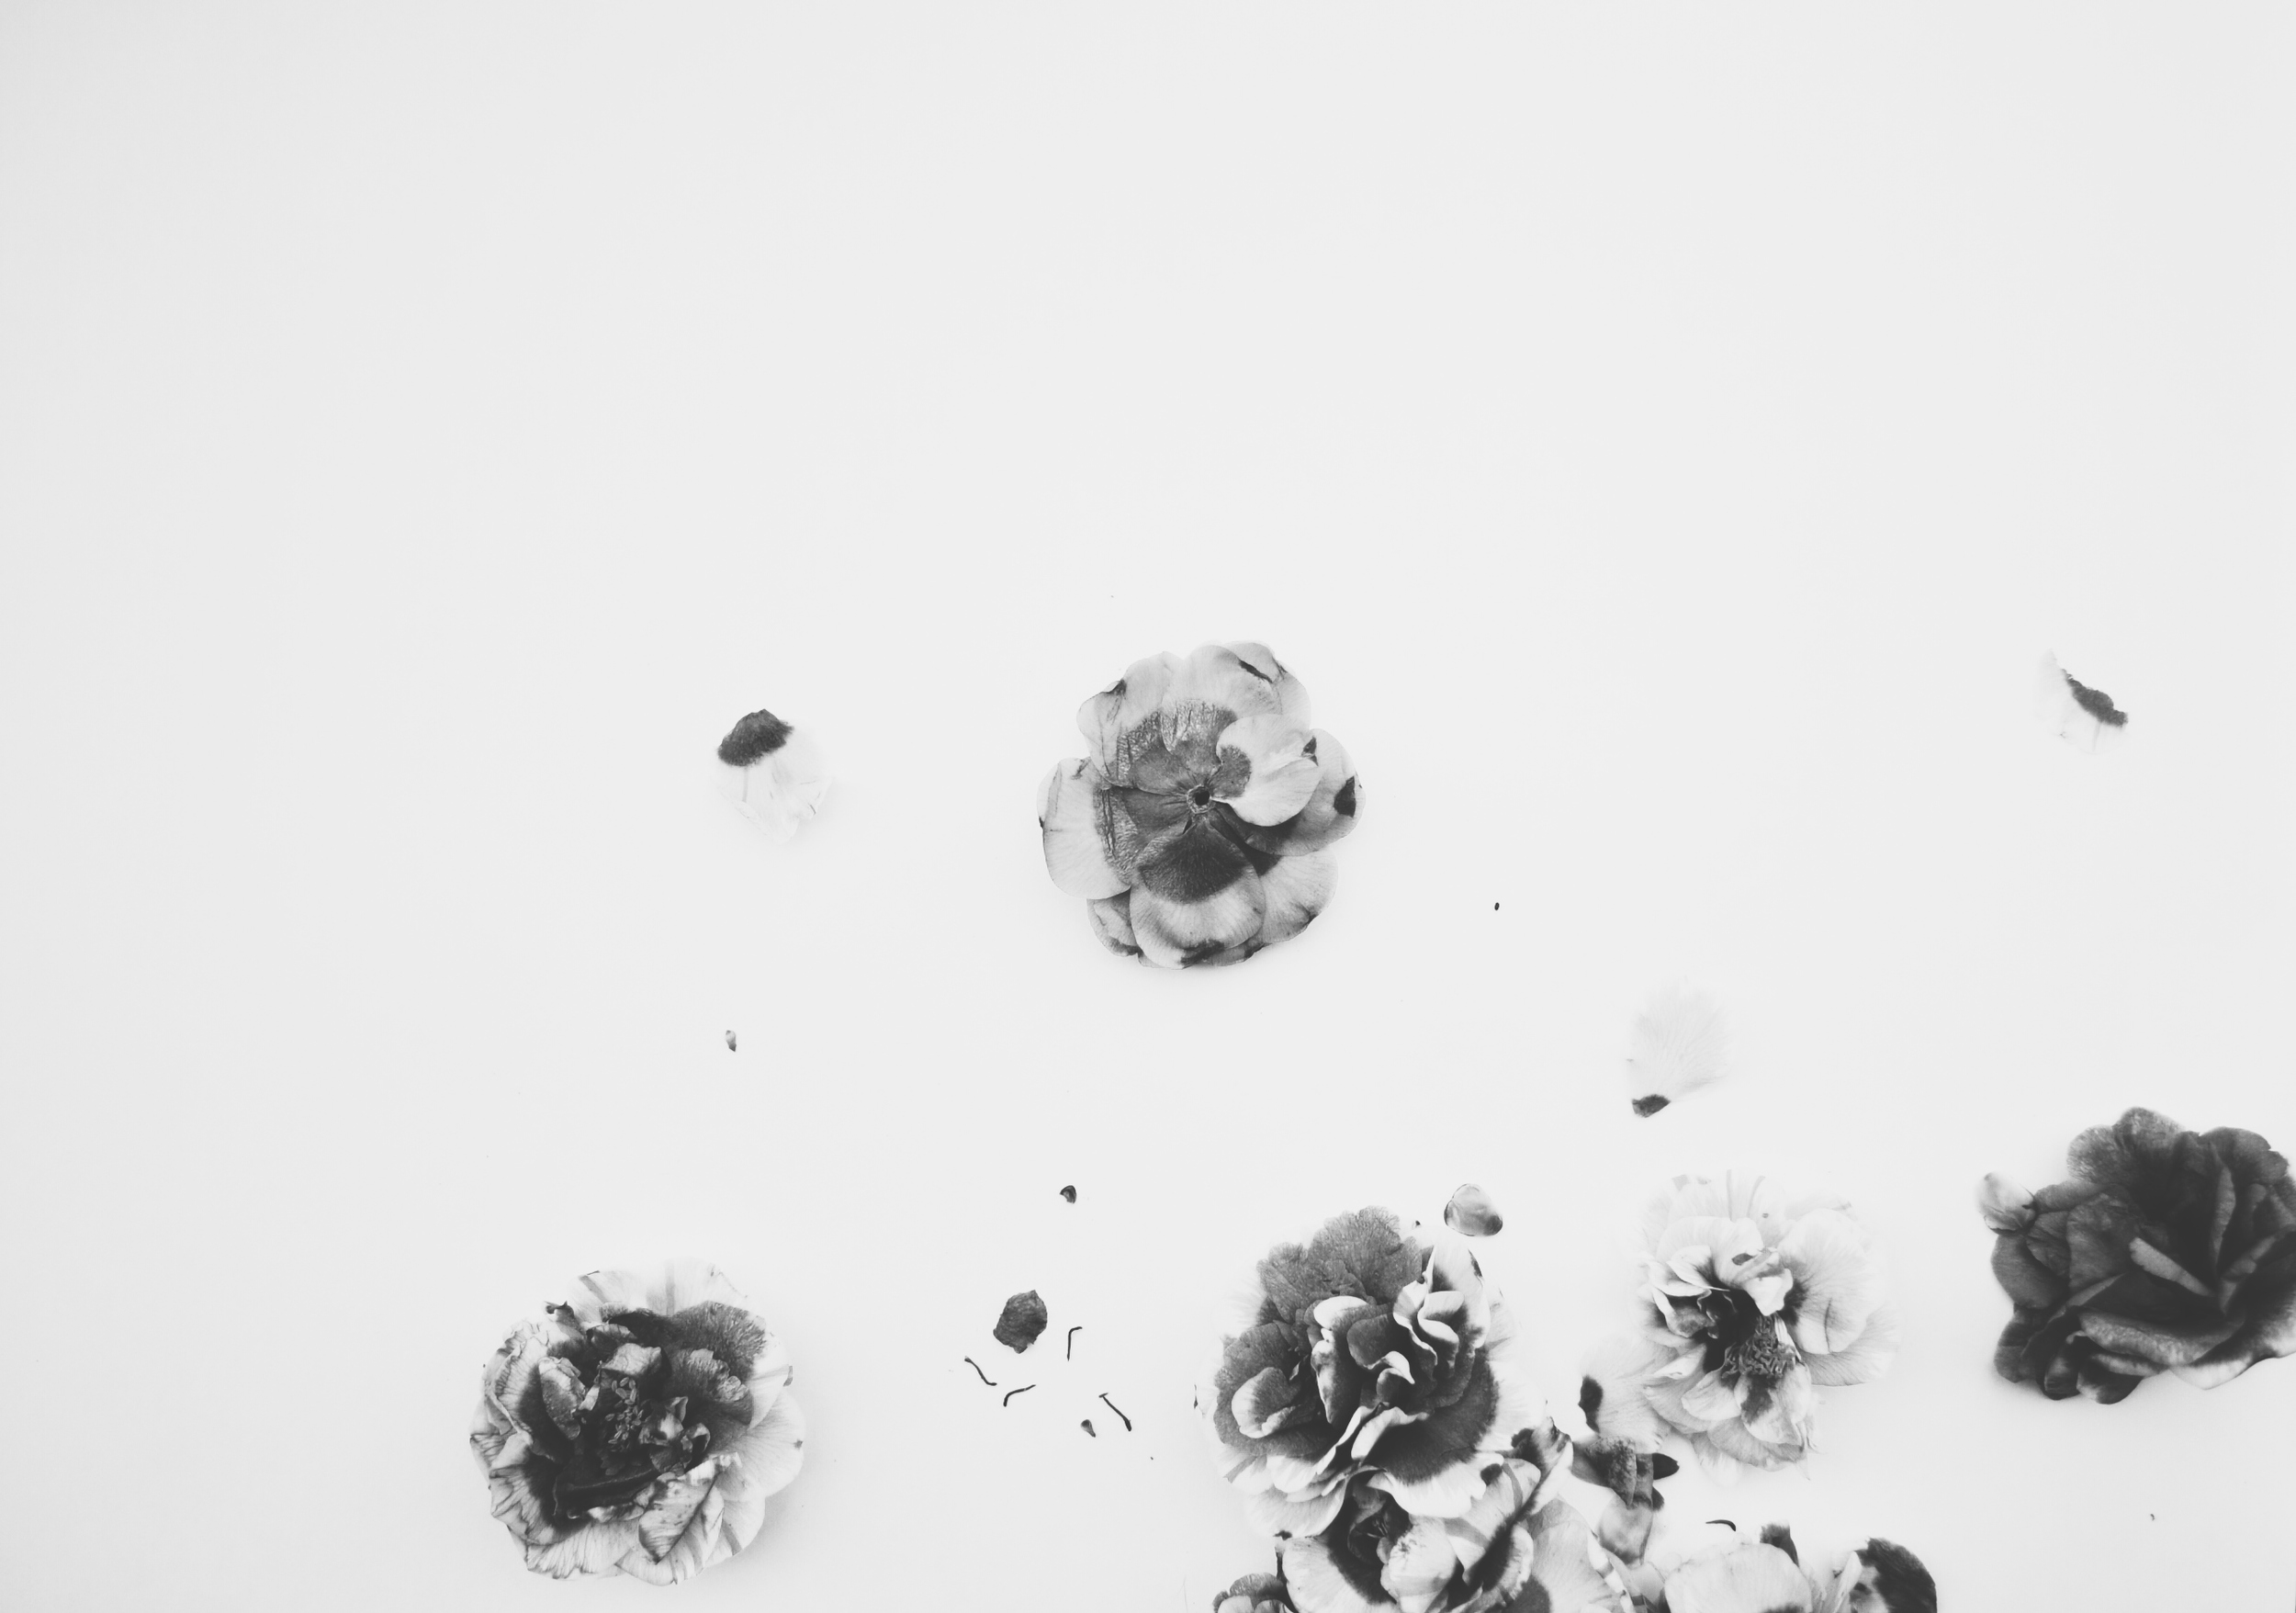 lisa qualls,  camellia debris (study for a drawing) , 2015. Photograph on watercolor paper, 21 x 30 inches.